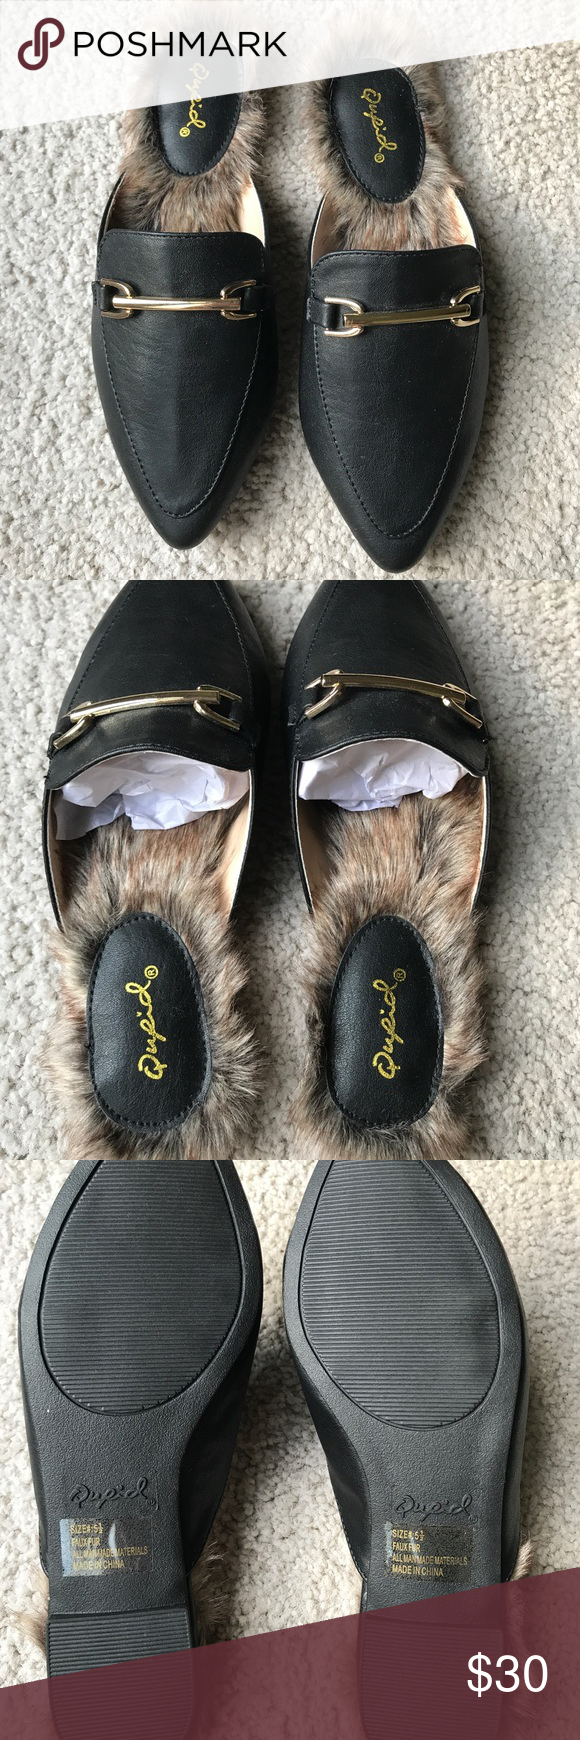 b5e418d38ec Swirl Black Loafer Slides ✨ BRAND NEW✨ never worn pointed black loafer  slides with faux fur. Qupid Shoes Flats   Loafers